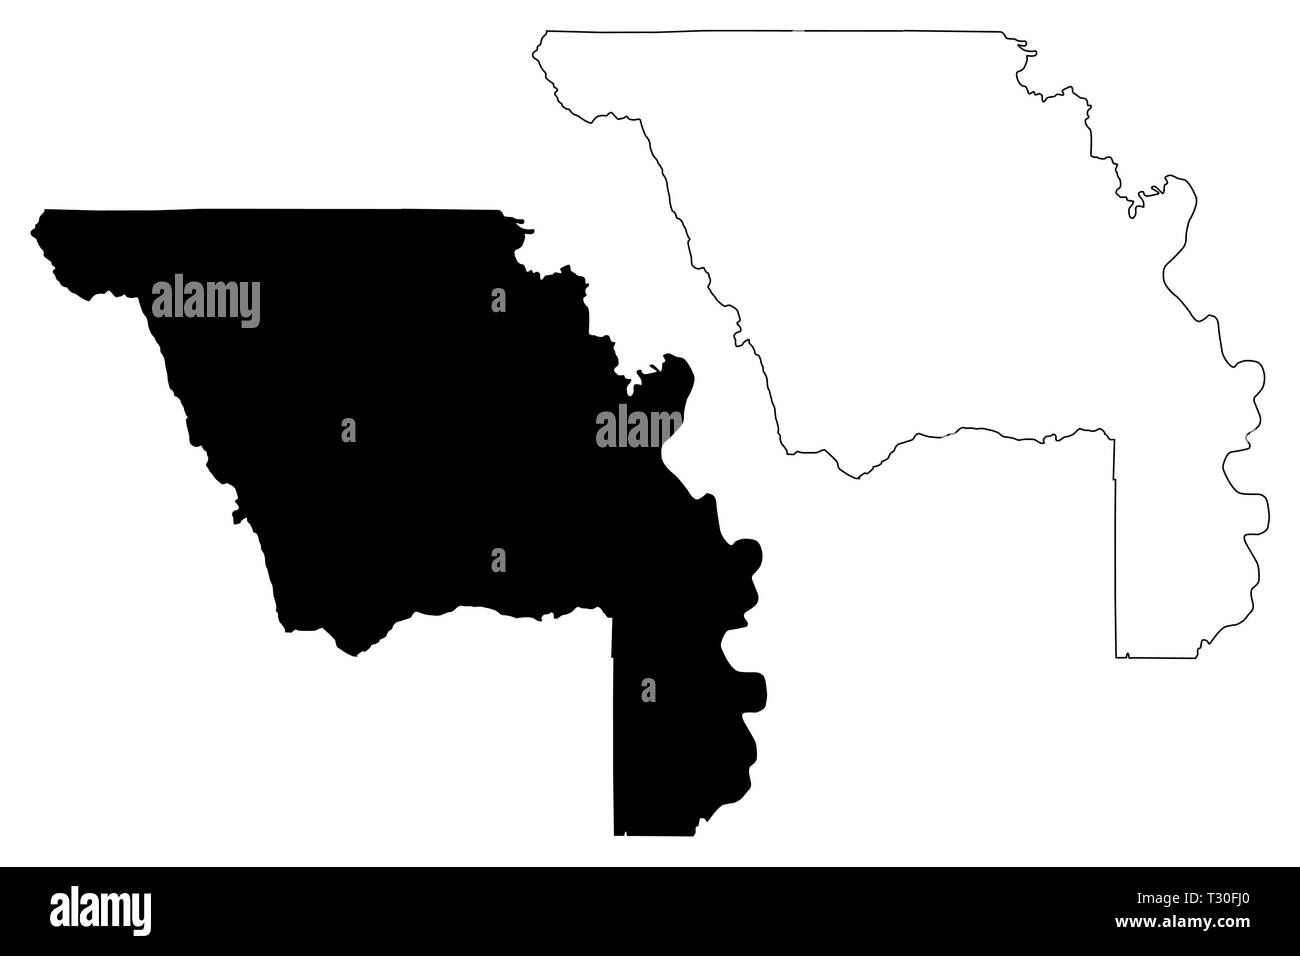 Yolo County, California (Counties in California, United States of ...